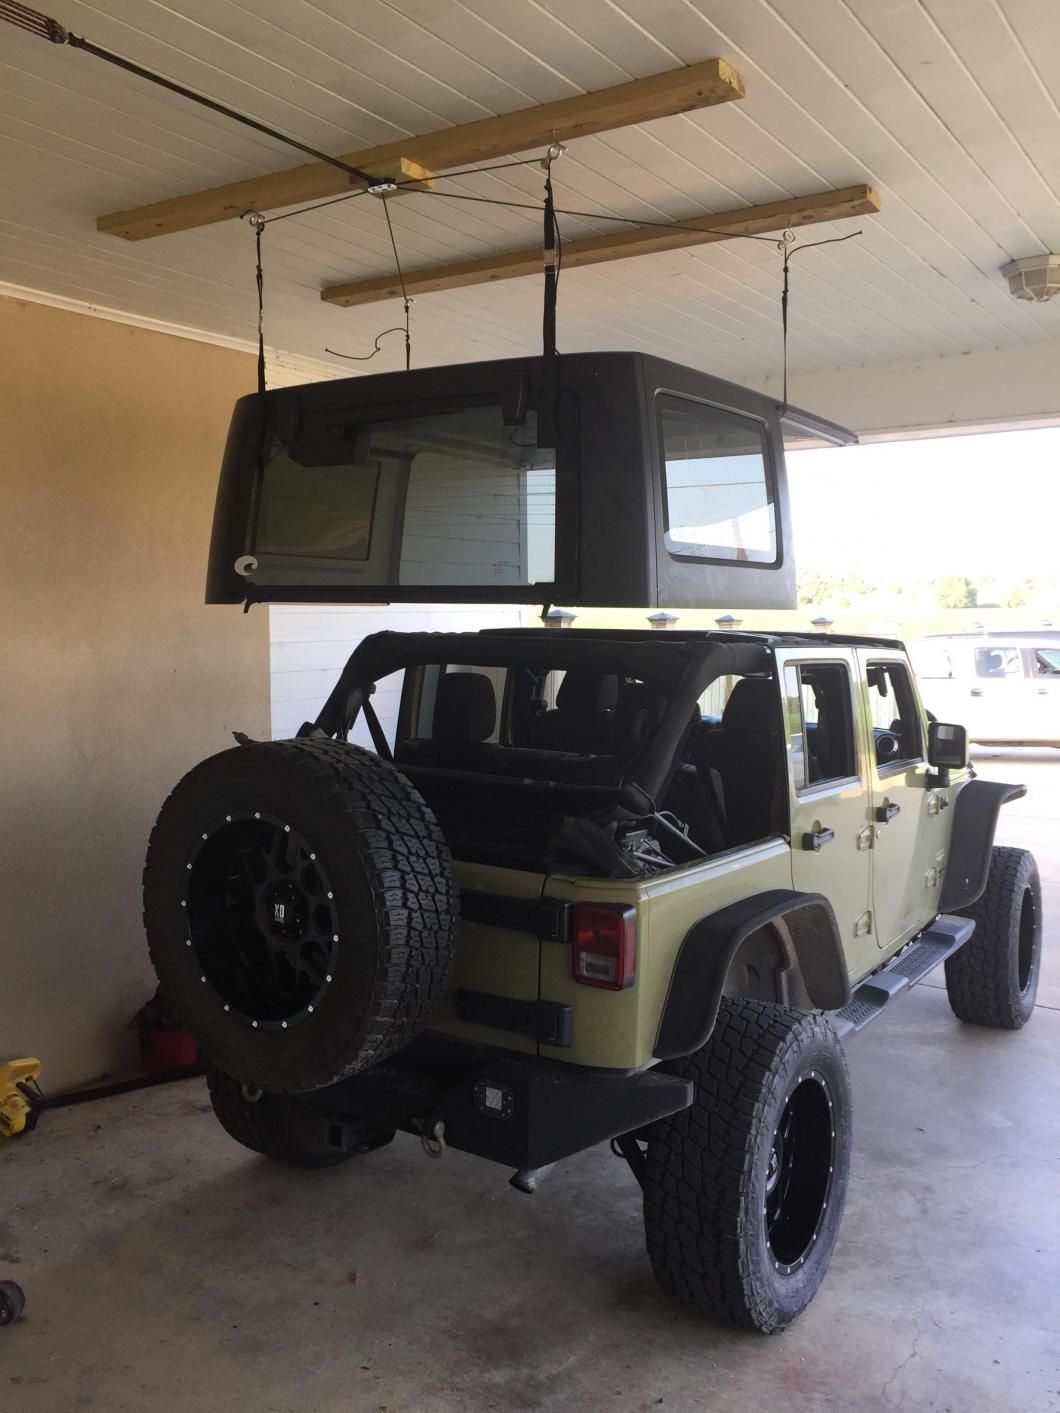 Harken Jeep Wrangler Hoister Garage Storage 4 Point Lift System 7803 Jeep In 2020 Jeep Wrangler Jeep Doors Jeep Garage